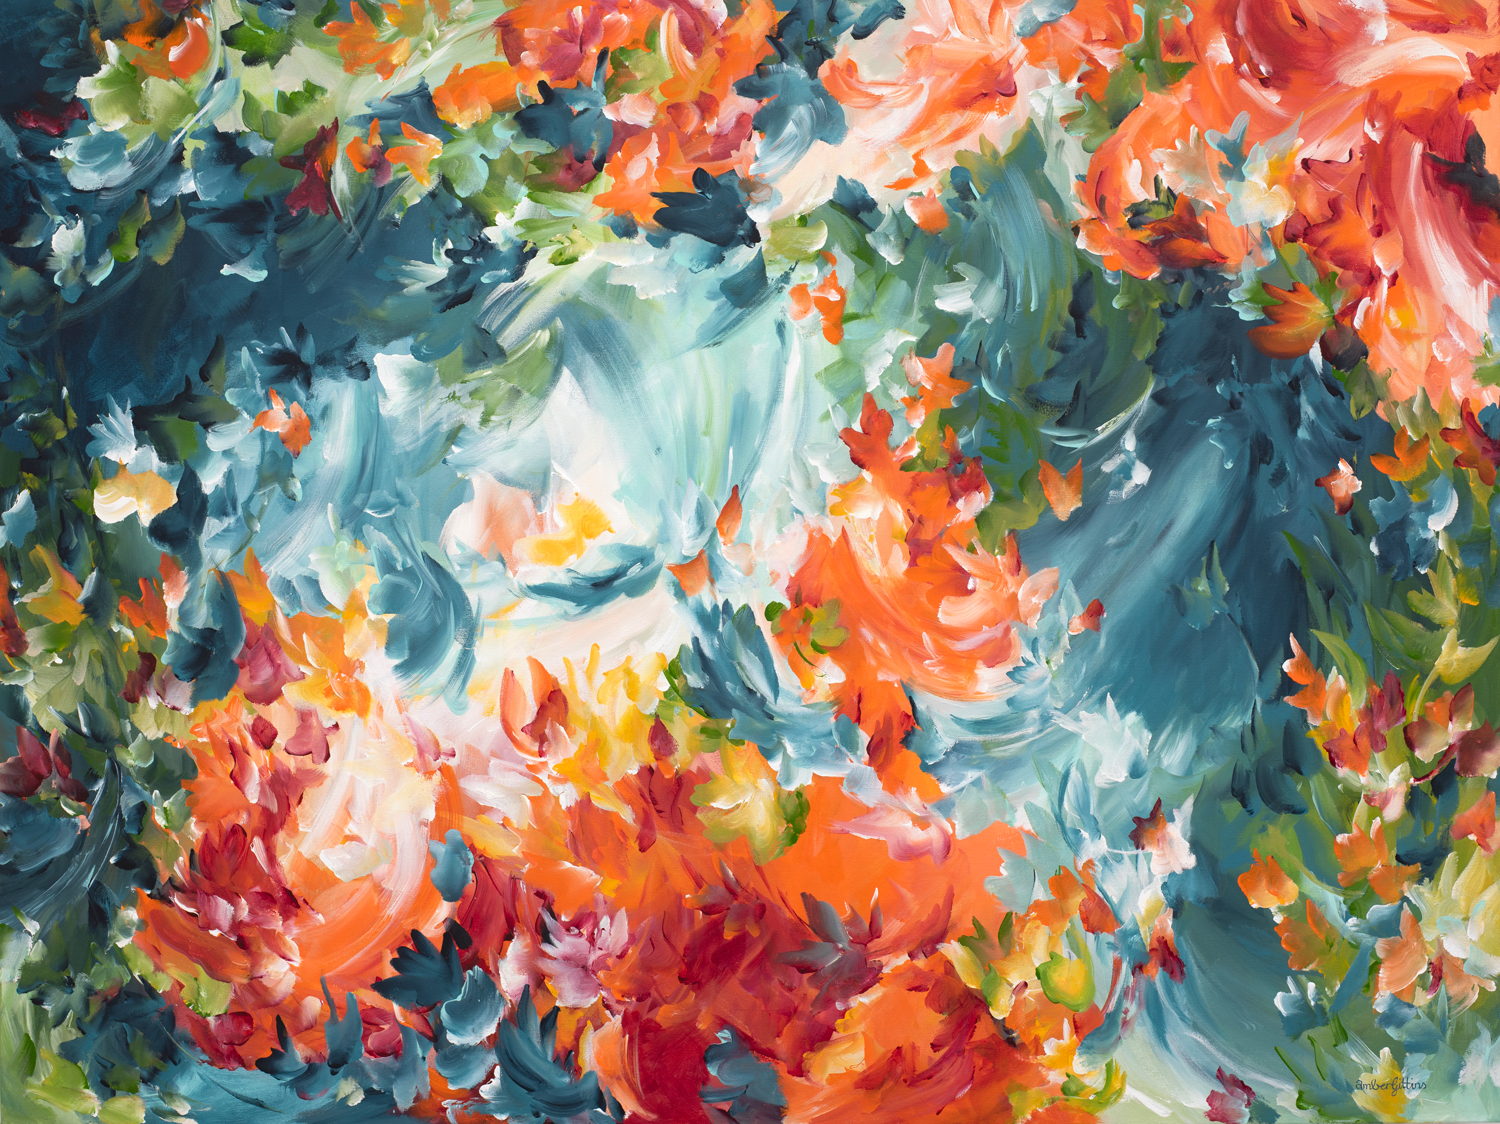 Making Memories Abstract Painting By Amber Gittins